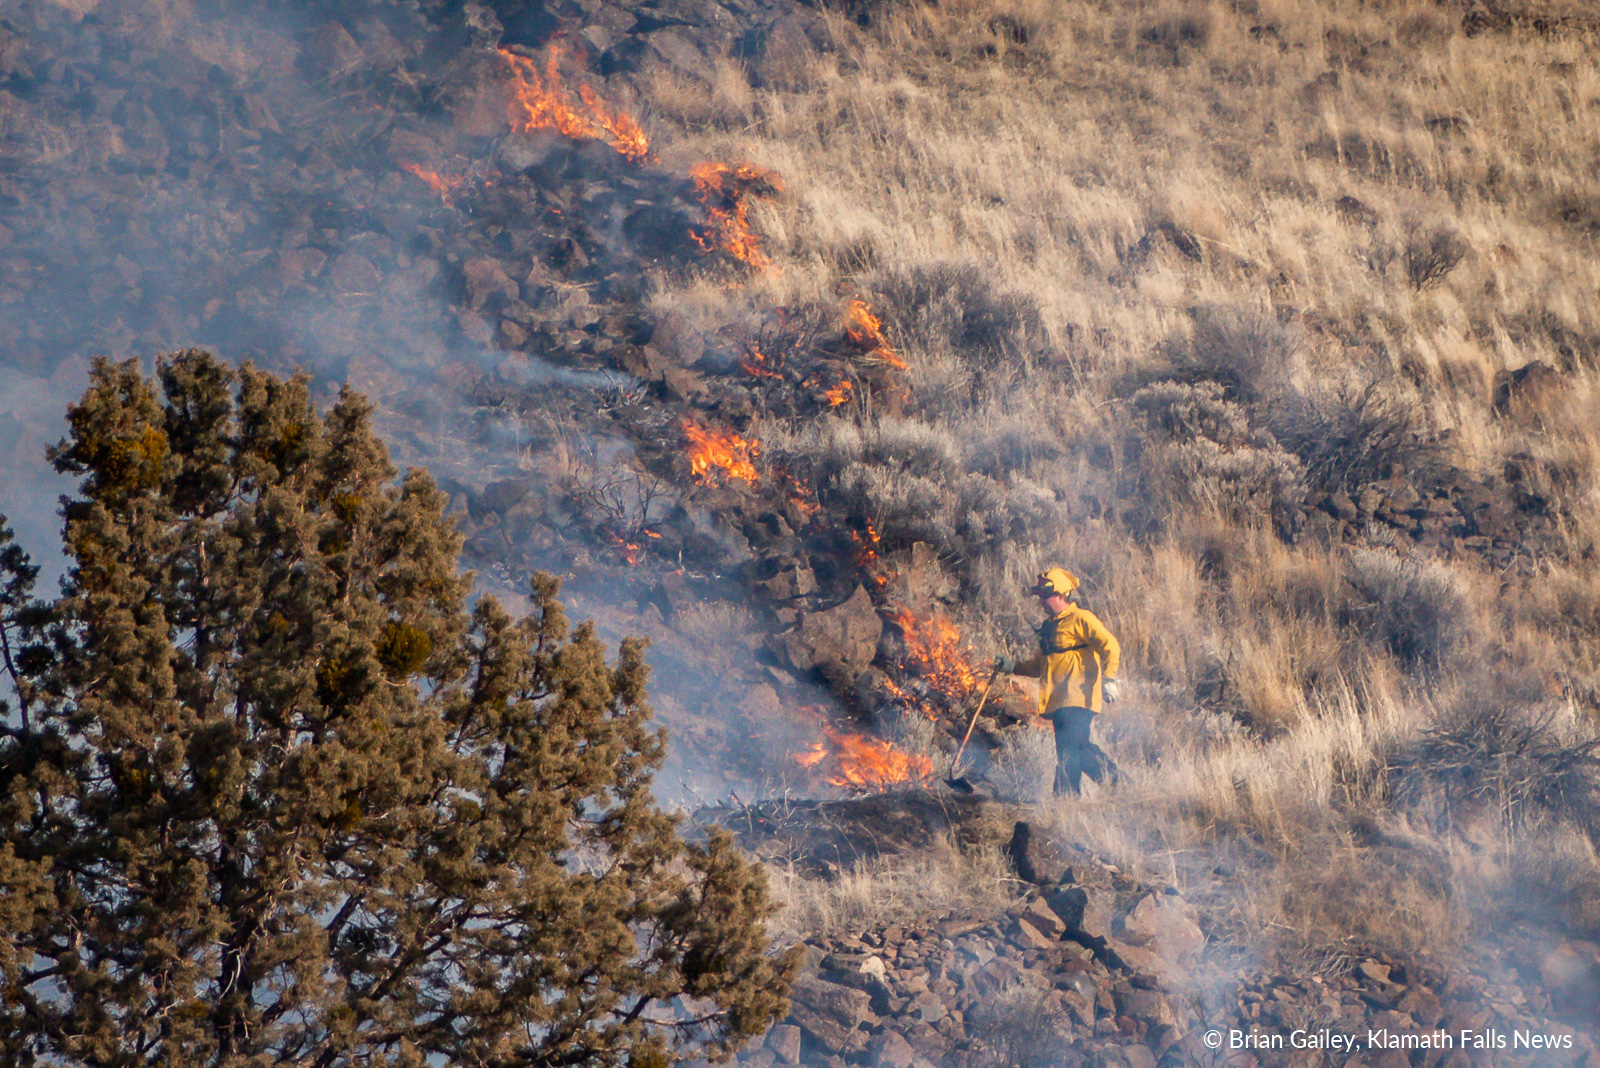 A firefighter uses a tool to stop the spread of a suspicious fire on Stukel Mountain. January 14, 2019 (Brian Gailey)